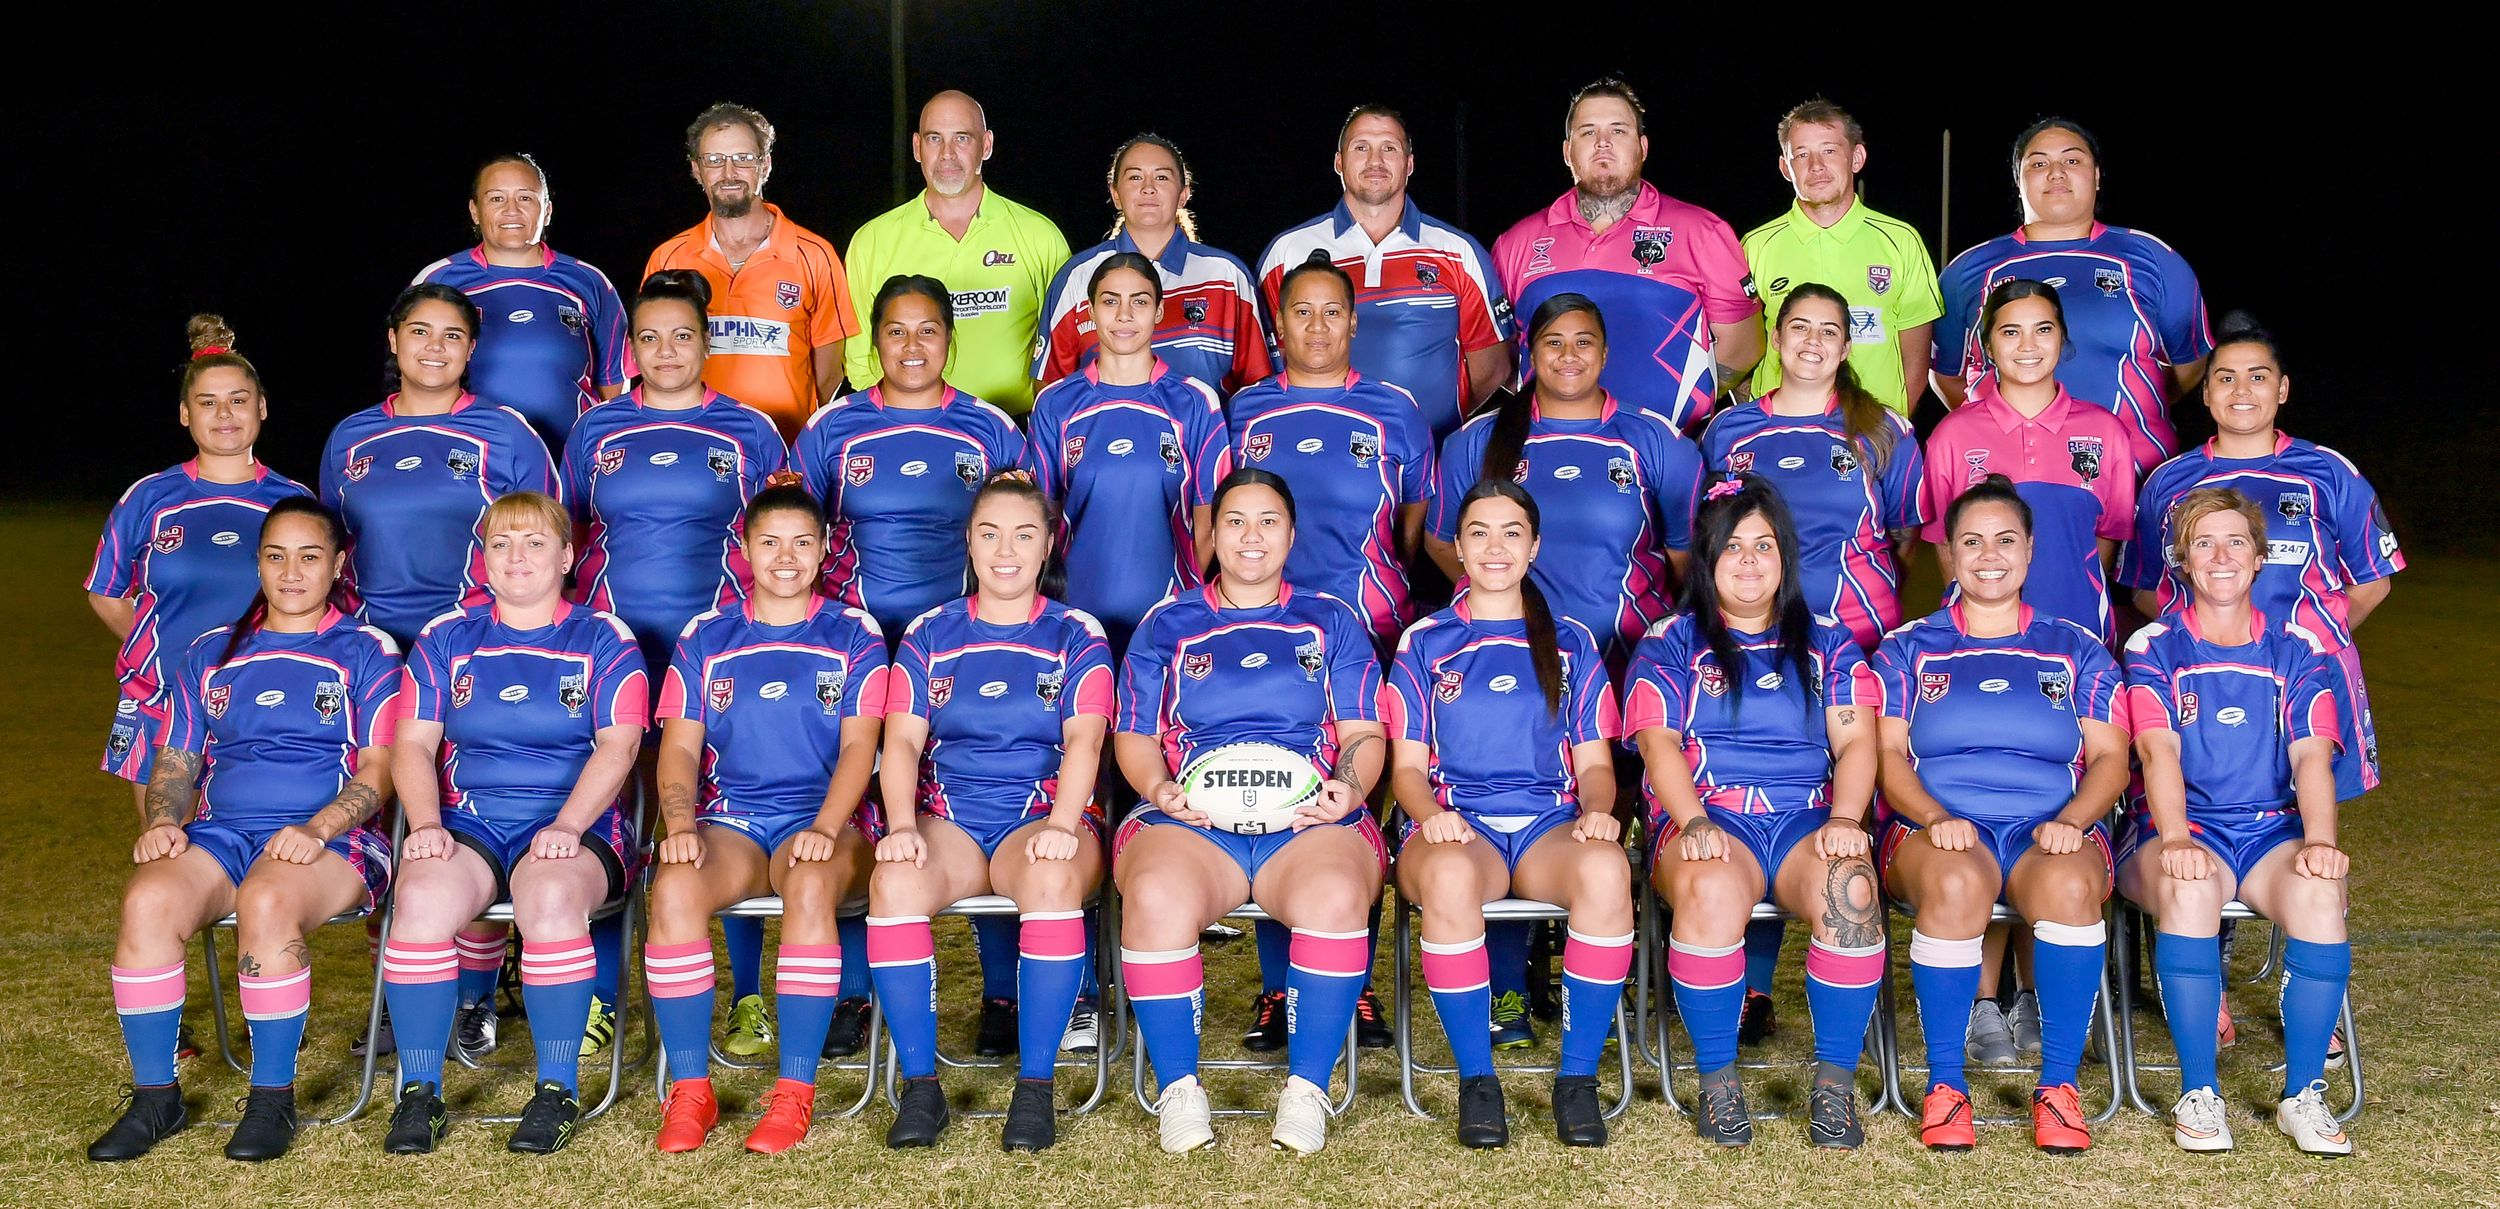 Womens rugby league team photo